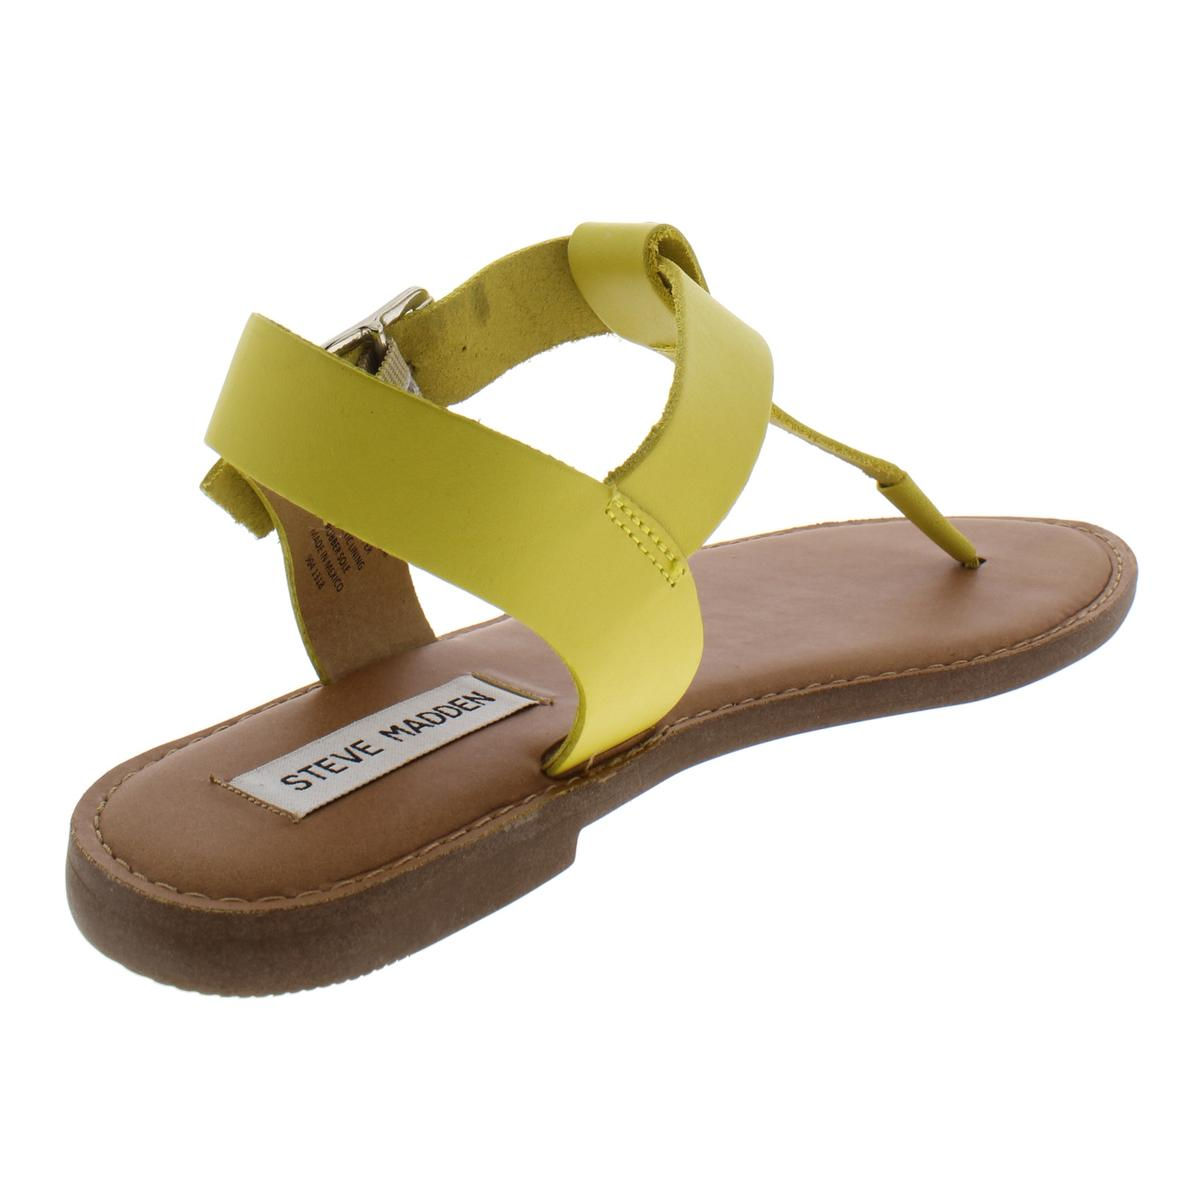 Steve-Madden-Womens-Skylar-Leather-Flats-Thong-T-Strap-Sandals-Shoes-BHFO-6308 thumbnail 10